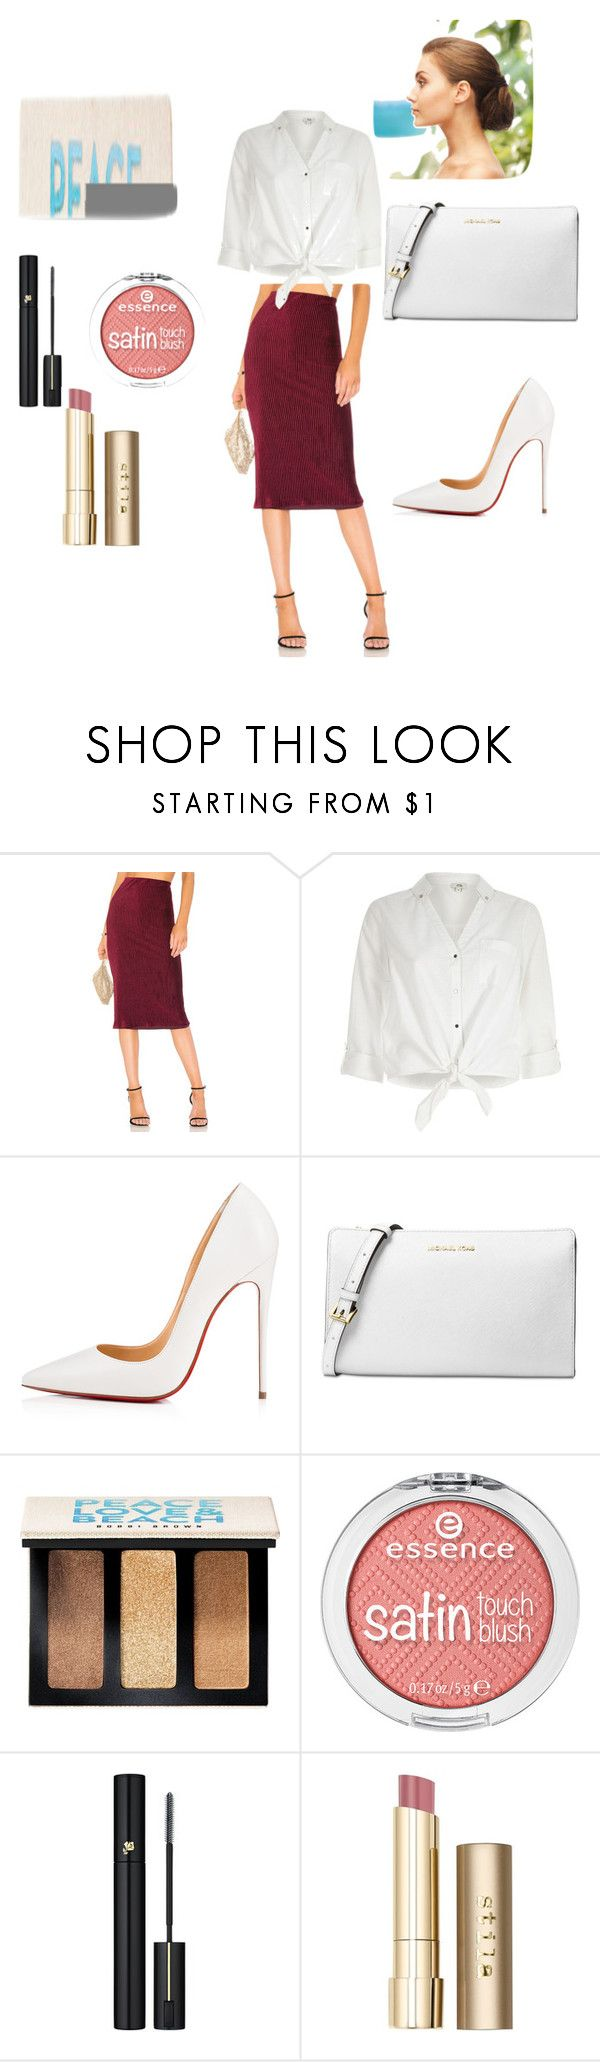 """Going out for Dinner"" by tieriadylandy on Polyvore featuring NBD, River Island, Christian Louboutin, Michael Kors, Bobbi Brown Cosmetics, Lancôme and Stila"